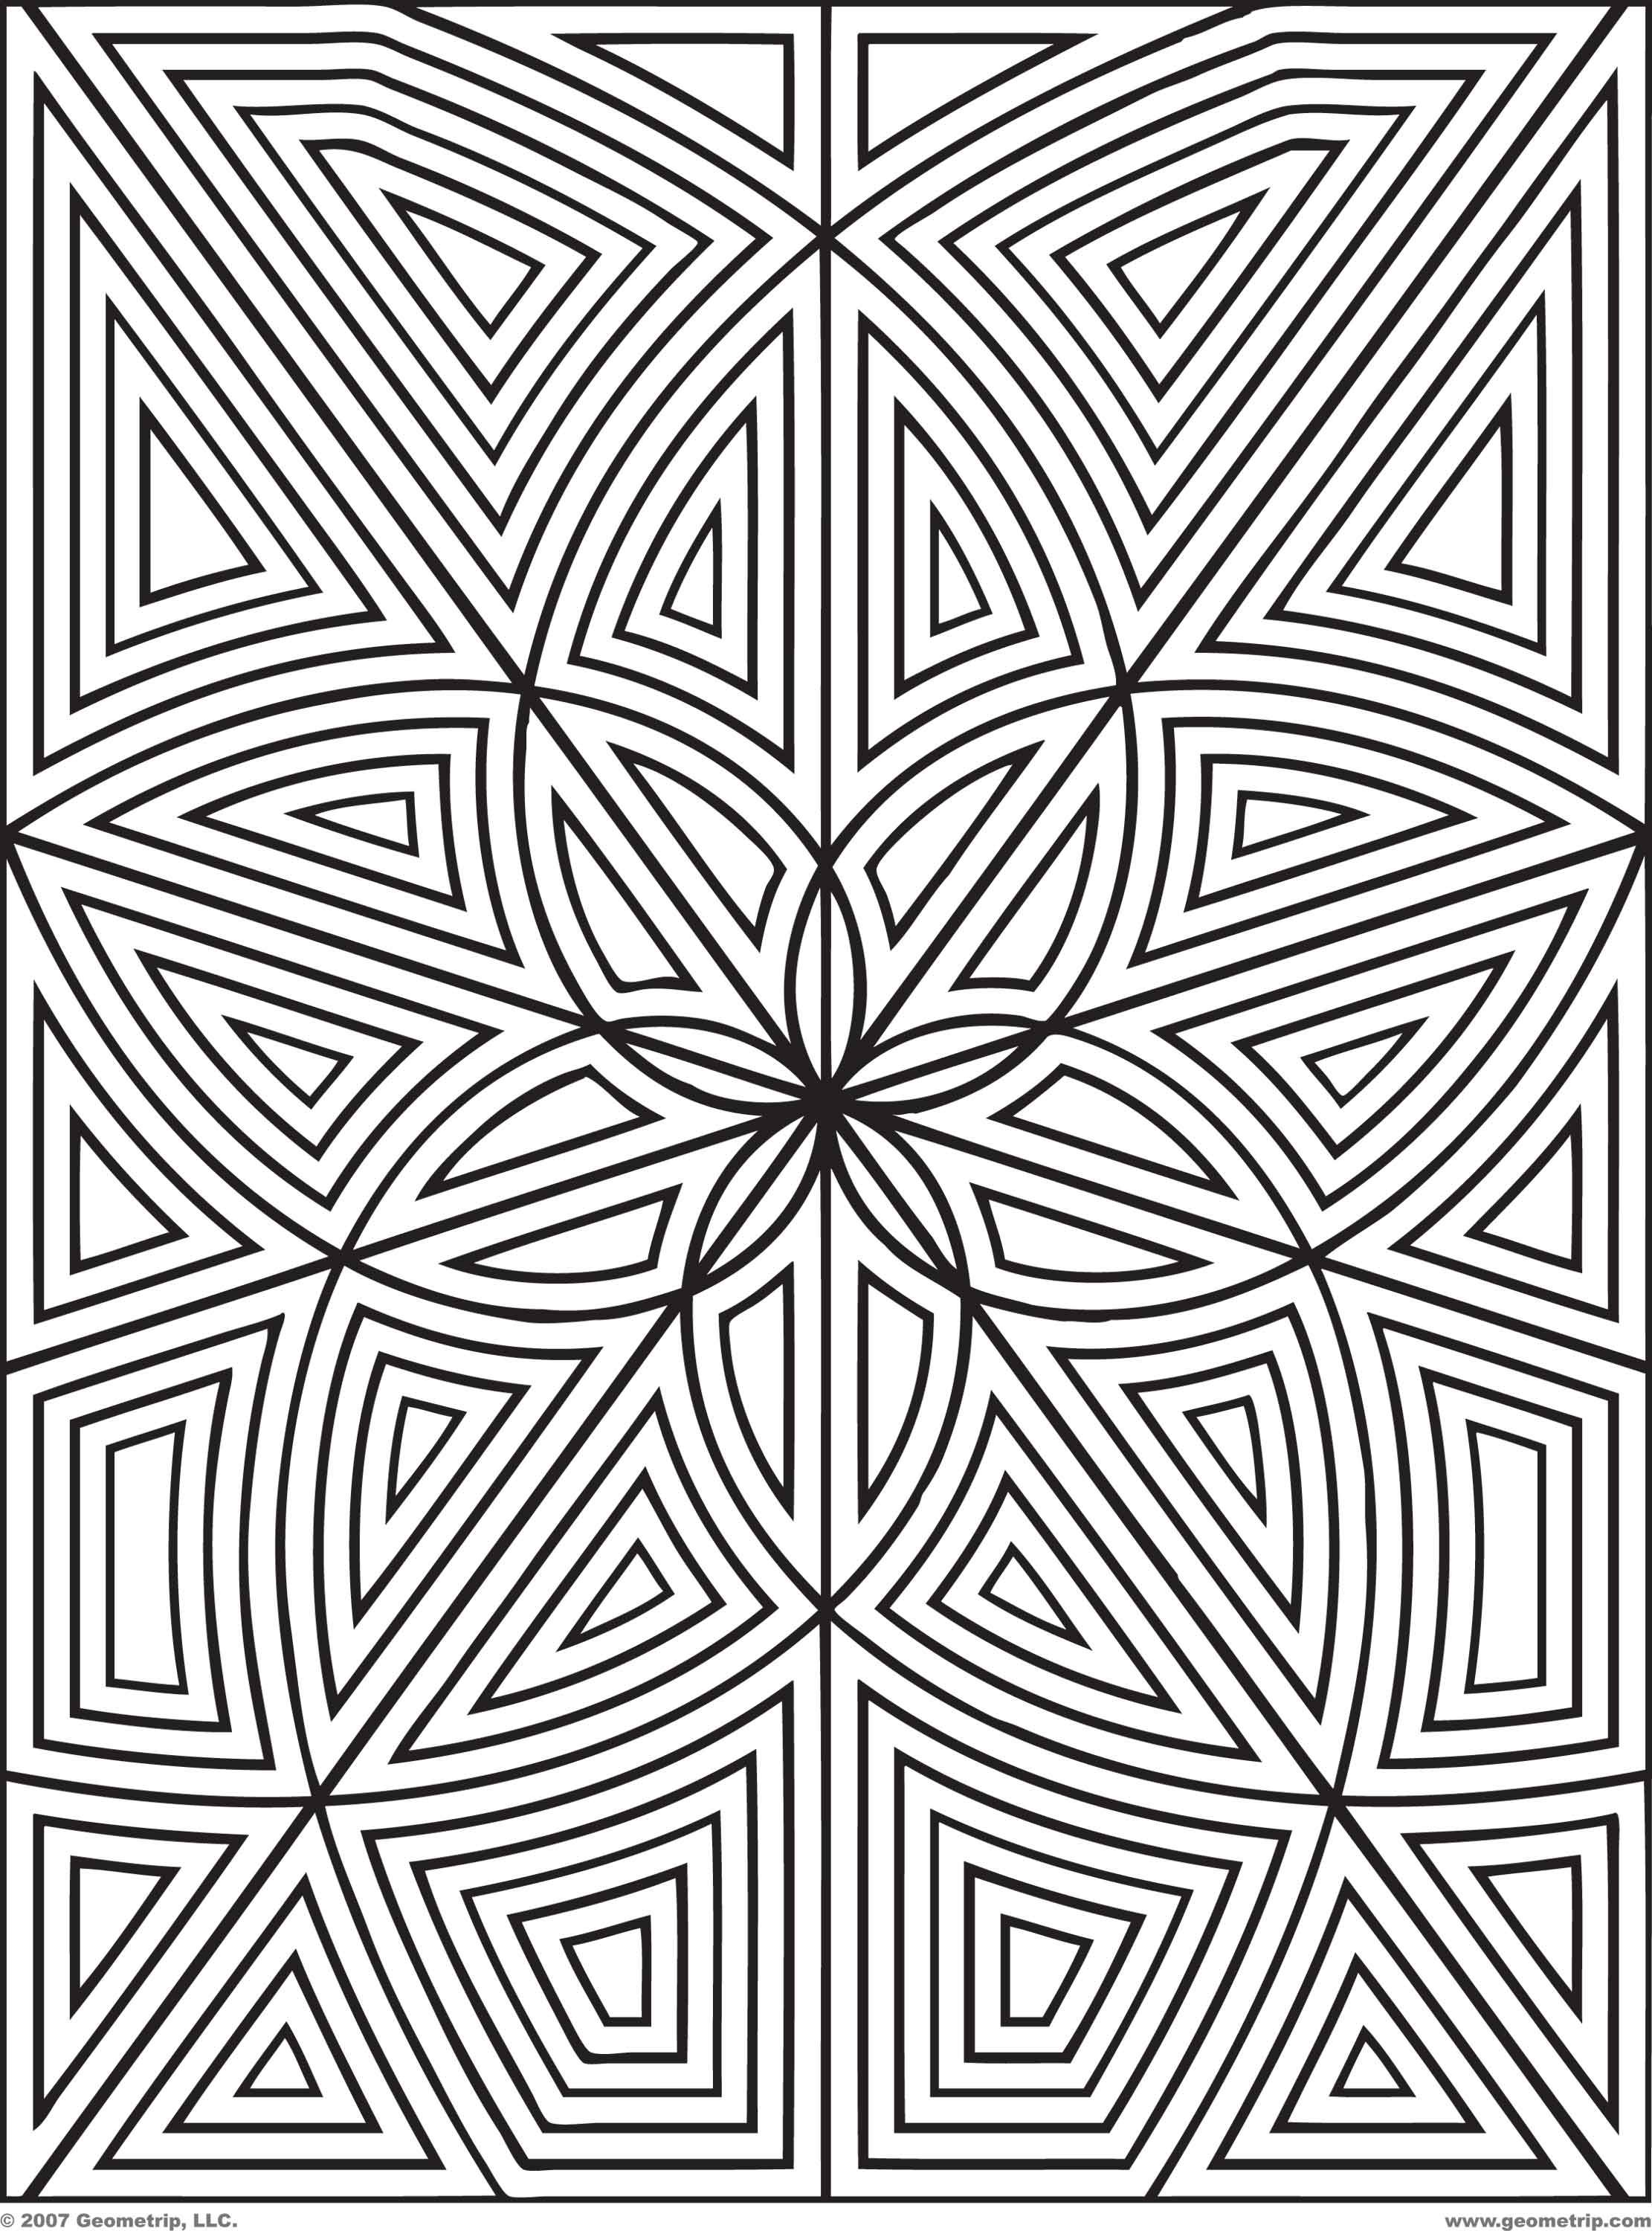 Coloring Pages To Print Designs : Designs to print and color geometrip free